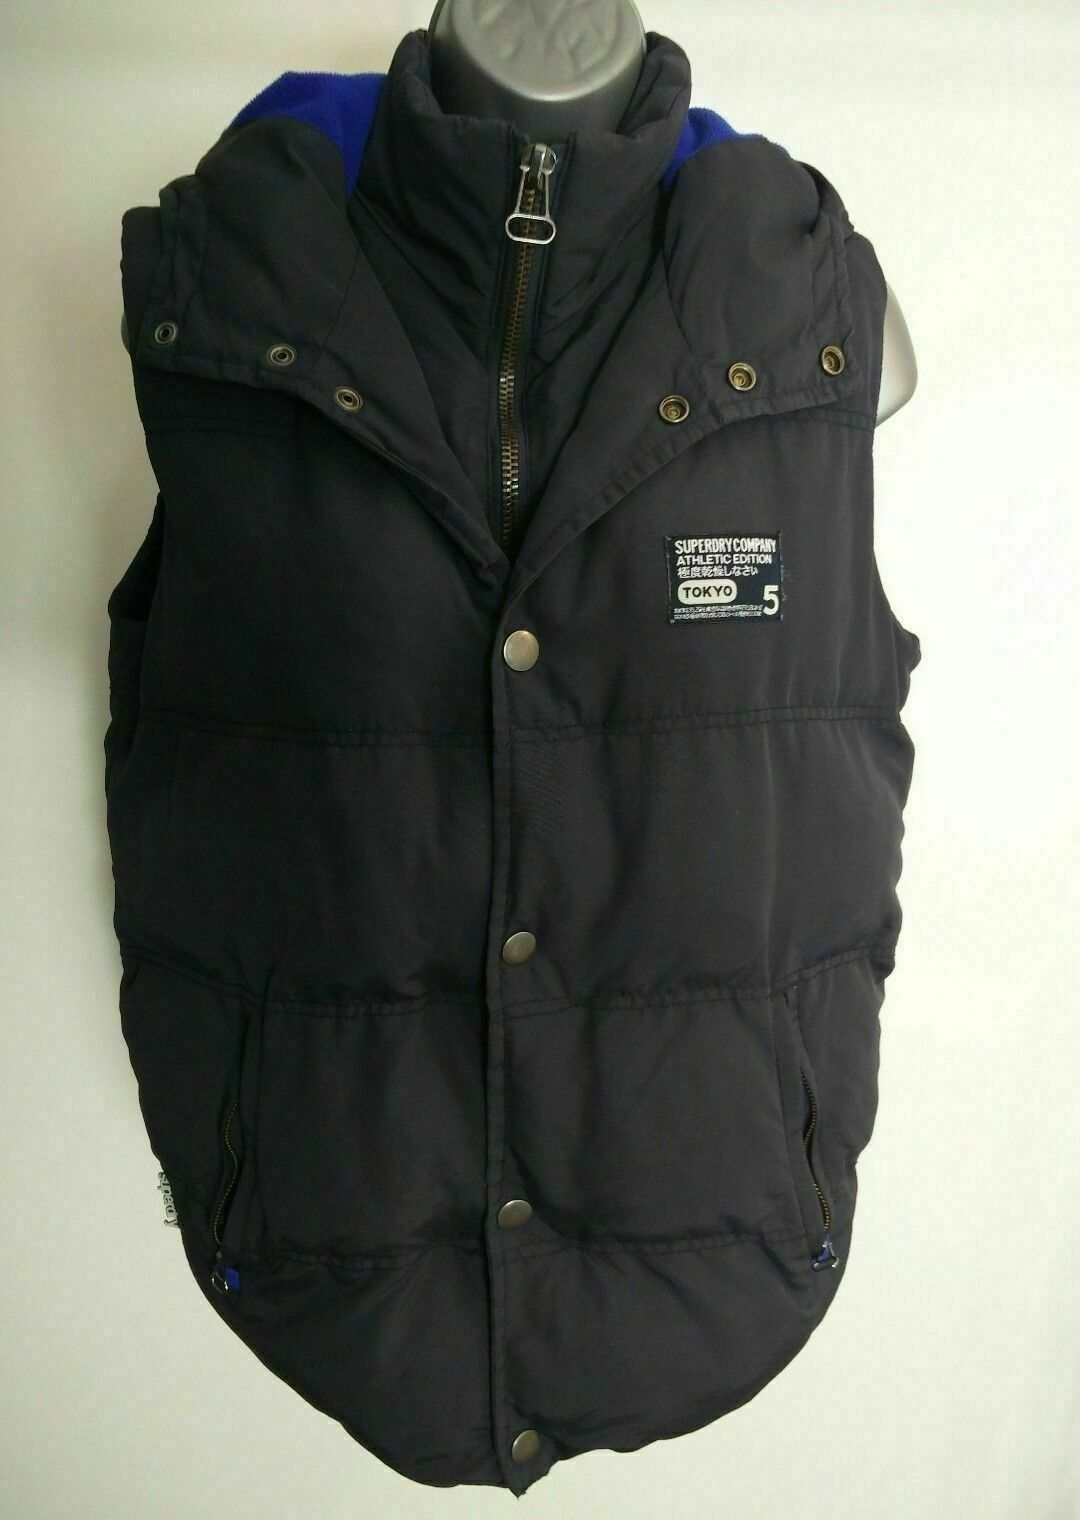 SUPERDRY NAVY blueE BODY WARMER SHELL S SMALL